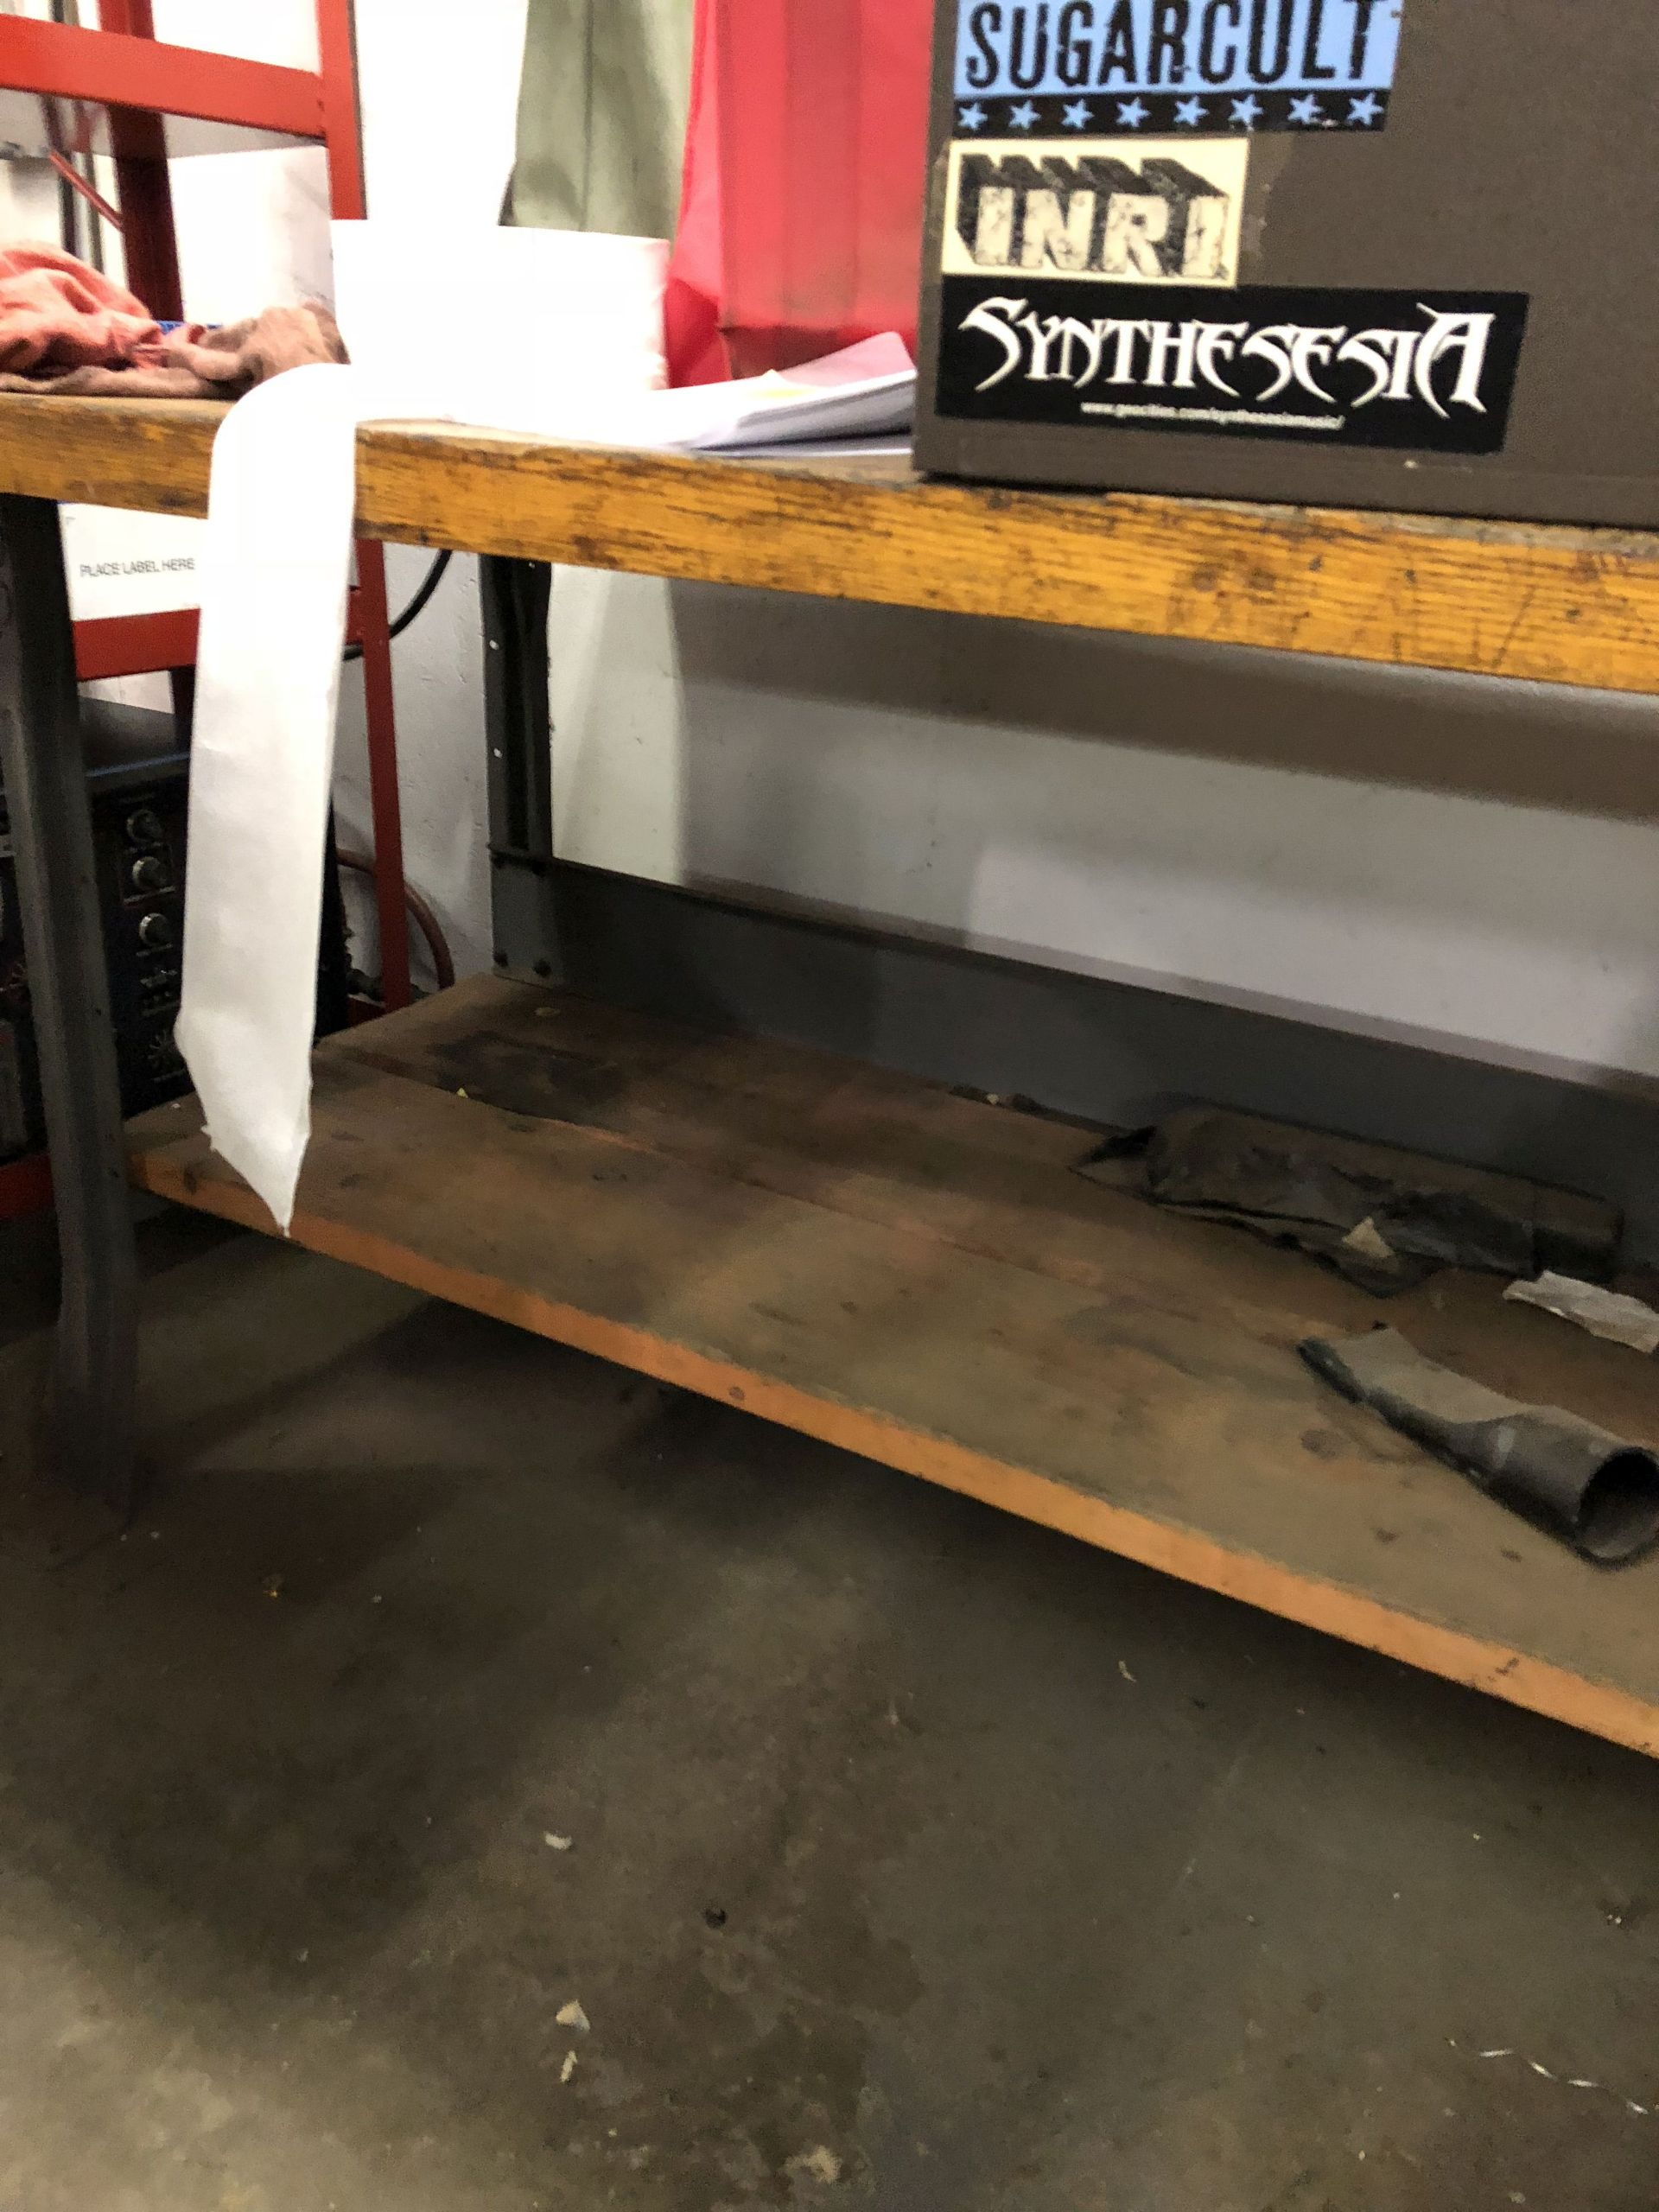 Lot 37 - METAL WORK BENCH WITH WOOD TOP, 6' LONG x 3' WIDE x 34'' TALL [CONTENTS ON BENCH NOT INCLUDED] [